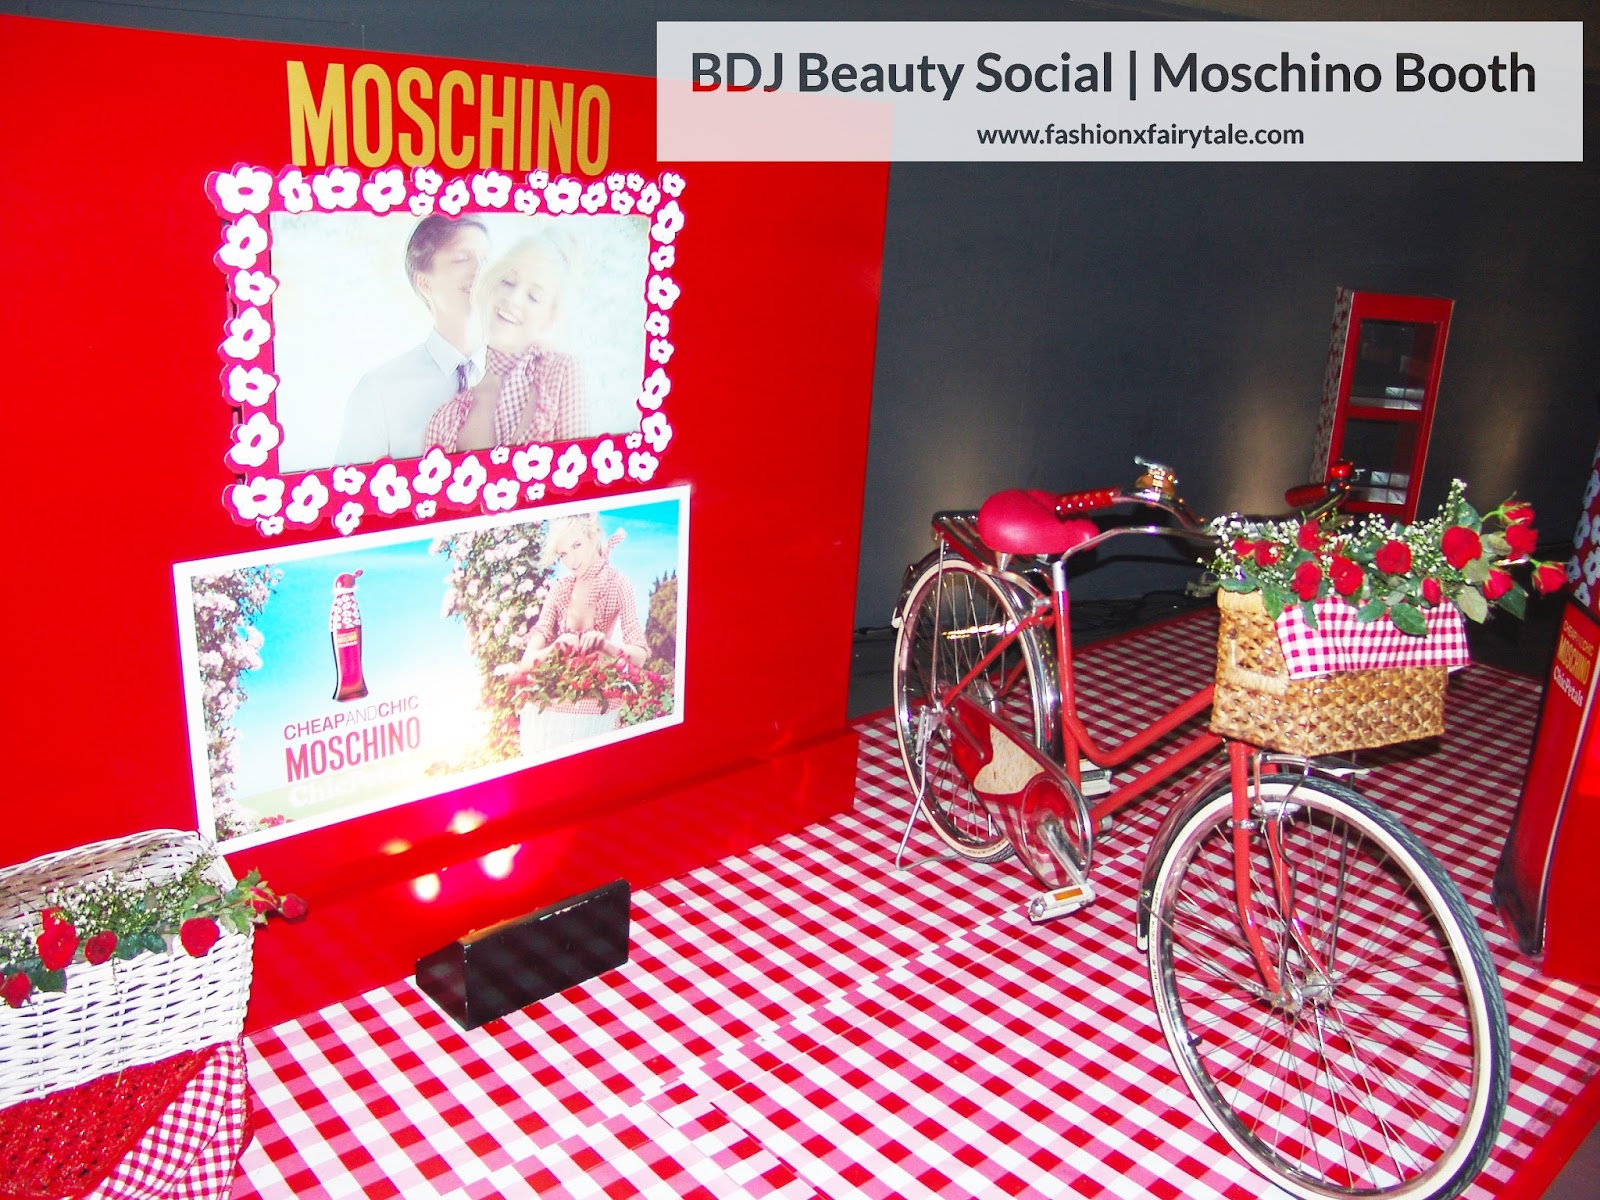 BDJ Beauty Social | Moschino & Revlon Booths